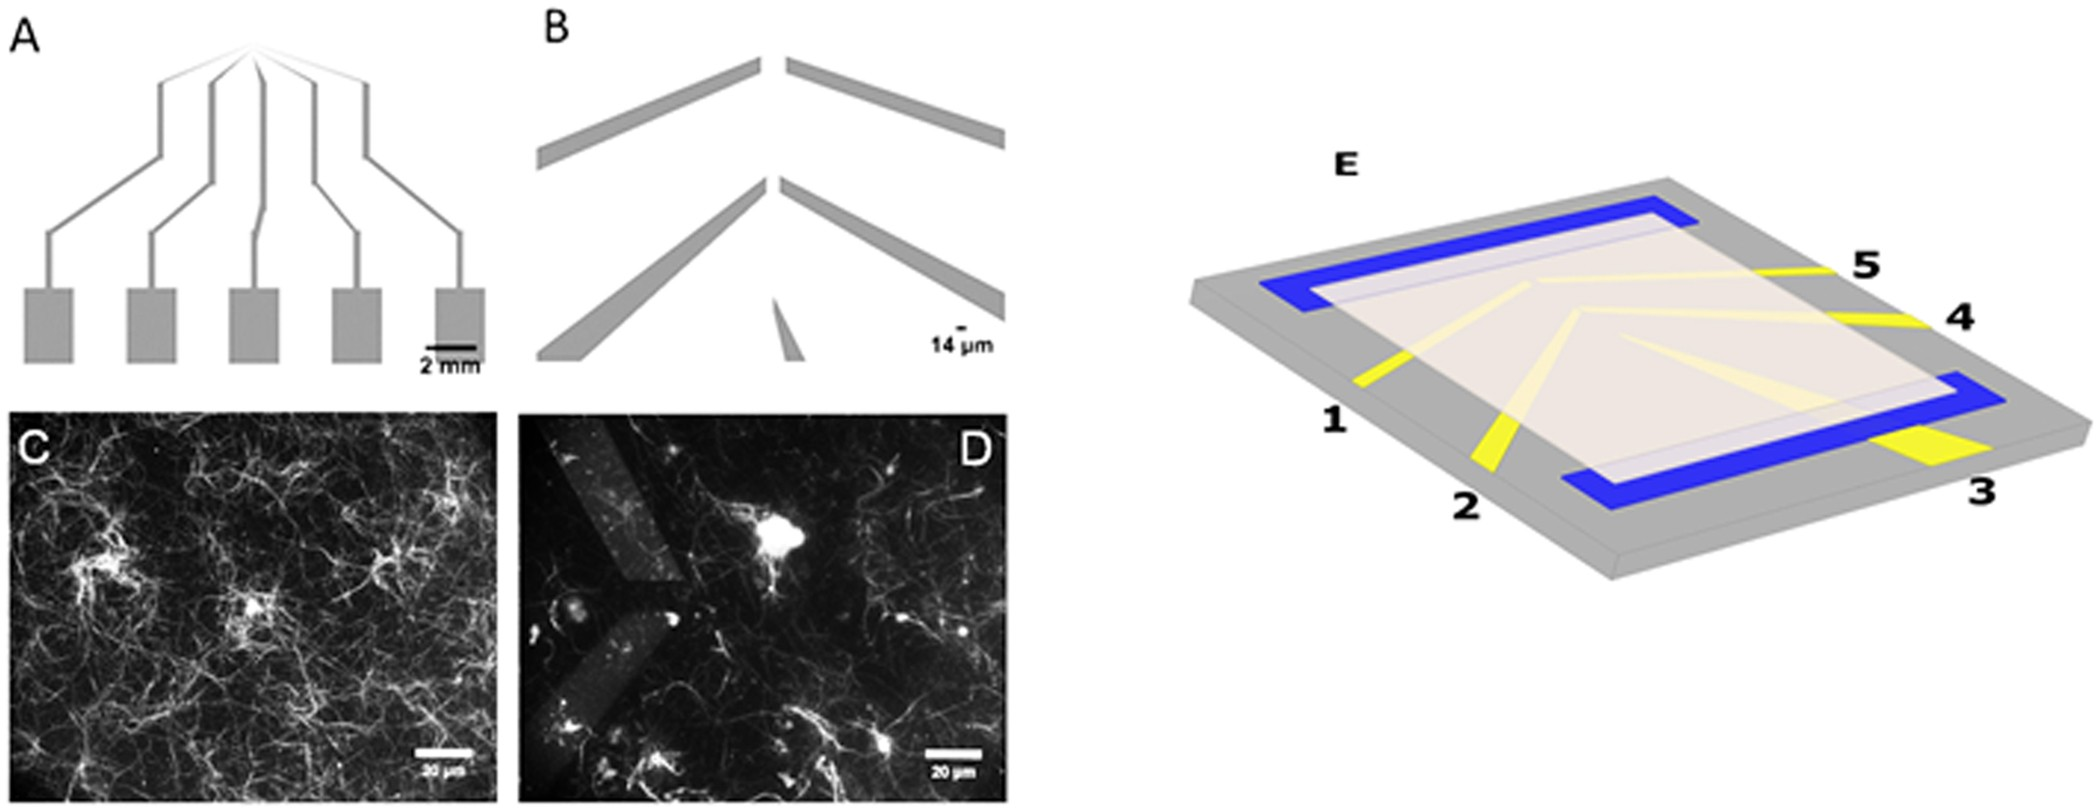 Response To Alternating Electric Fields Of Tubulin Dimers And Oscillator Transistor Between Multiple Leds Electrical Microtubule Ensembles In Electrolytic Solutions Scientific Reports